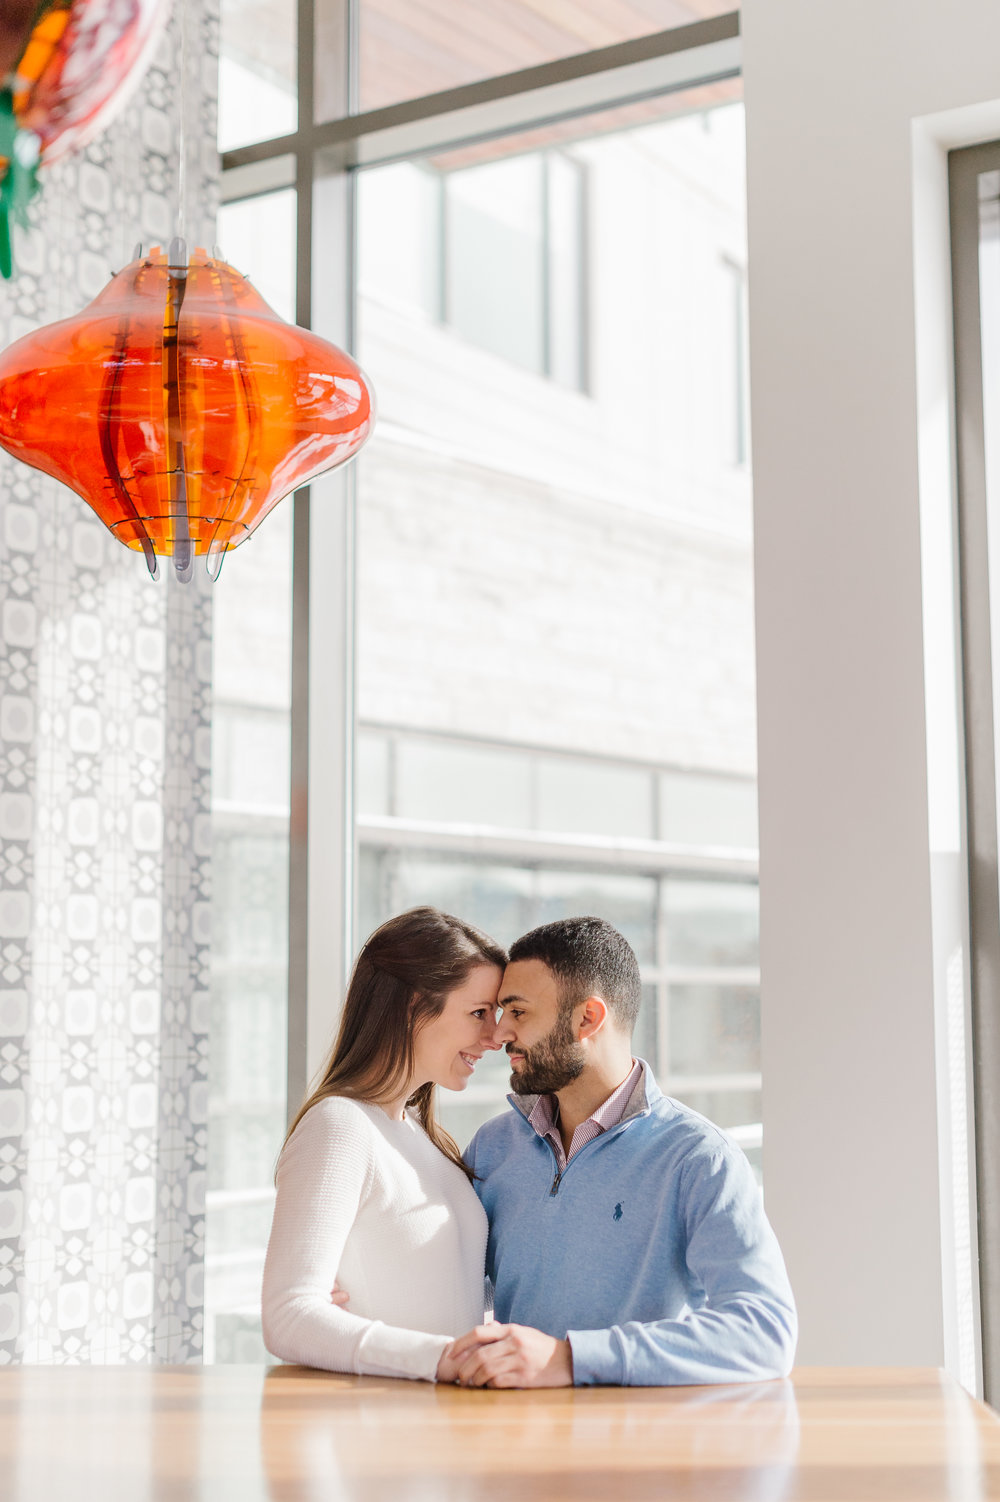 Rebecca_Shehorn_Photography_Michelle and Omar Alexander Hotel Engagement-36.jpg